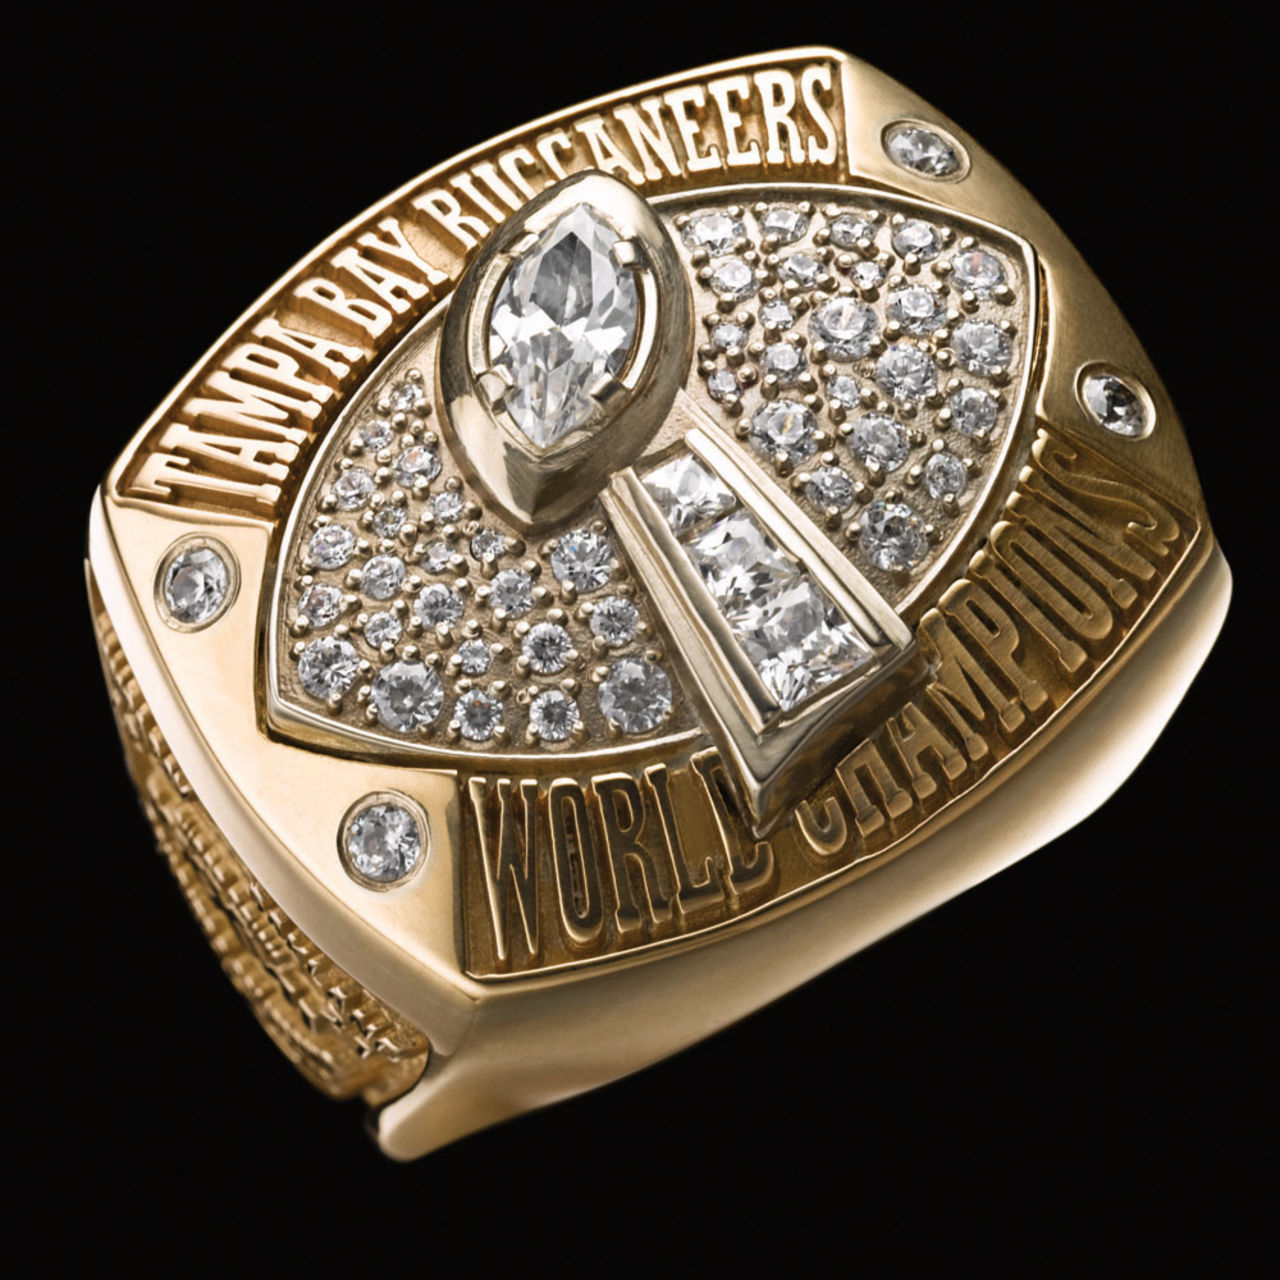 Tampa Bay Buccaneers 2003 champions ring